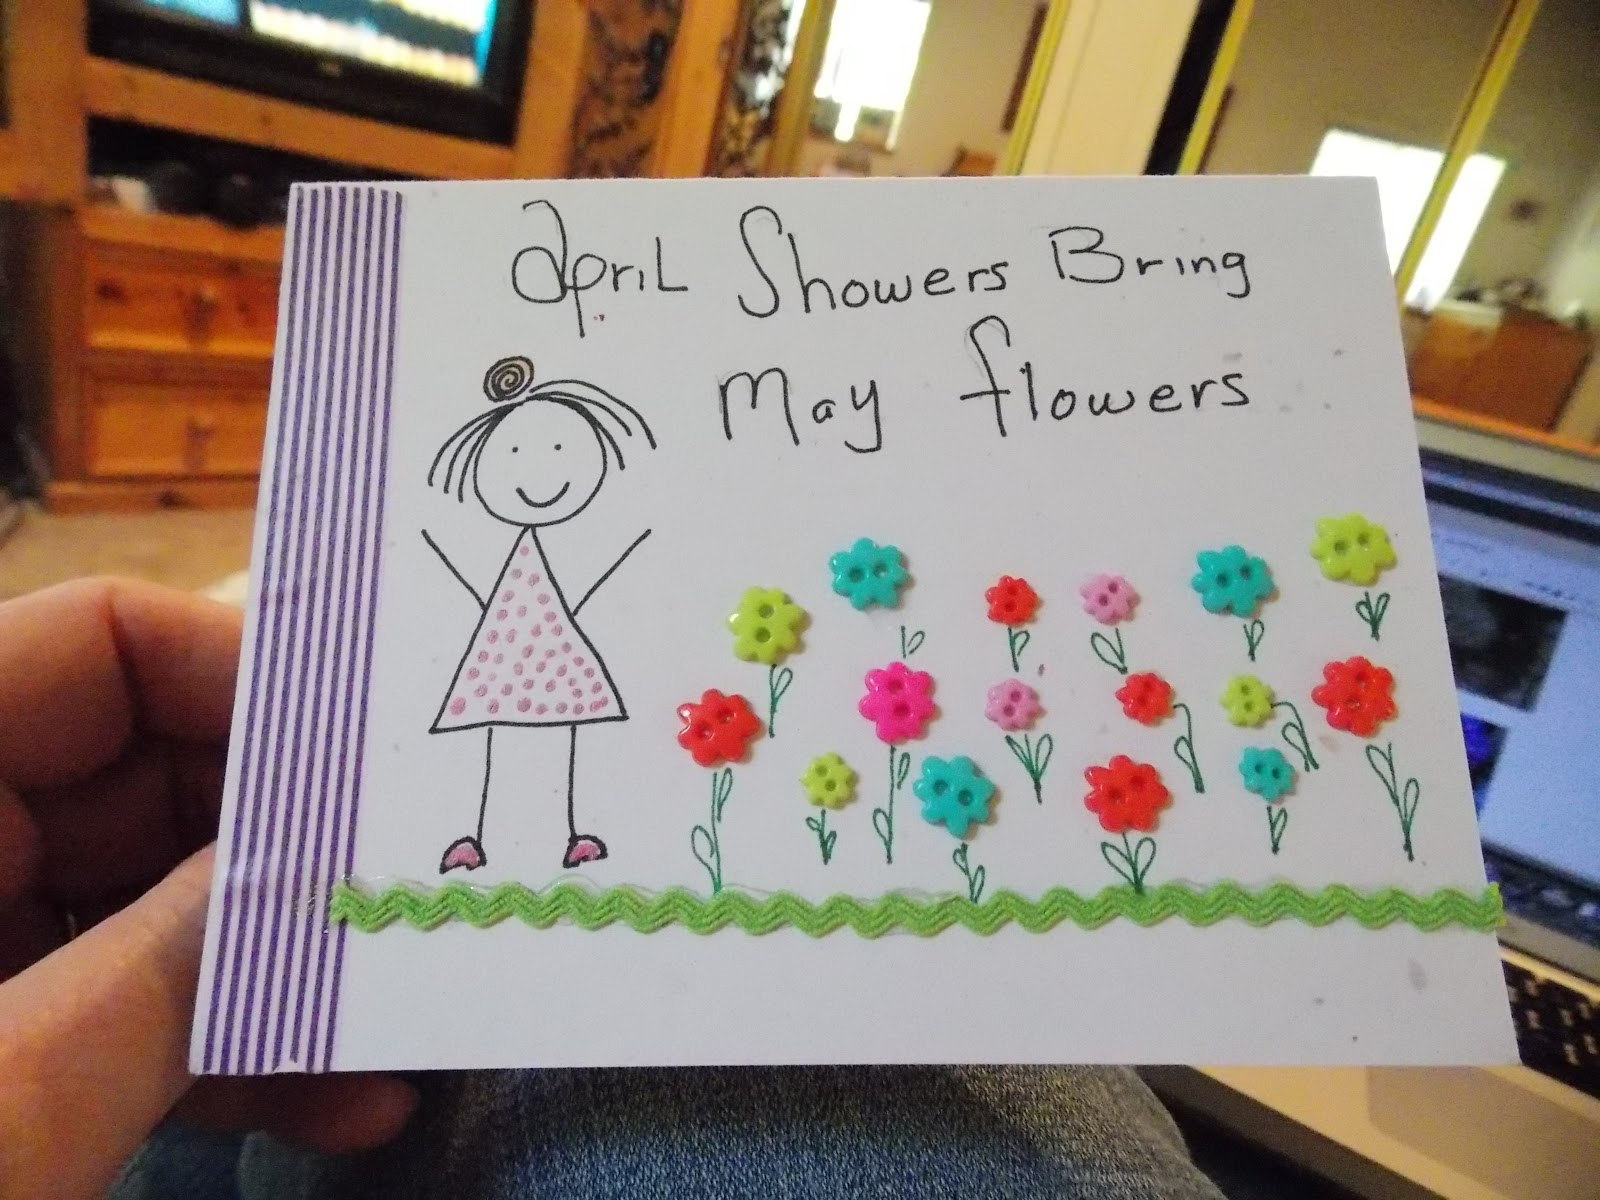 Lindsay Ostrom: april showers... bring may flowers... and mail ...